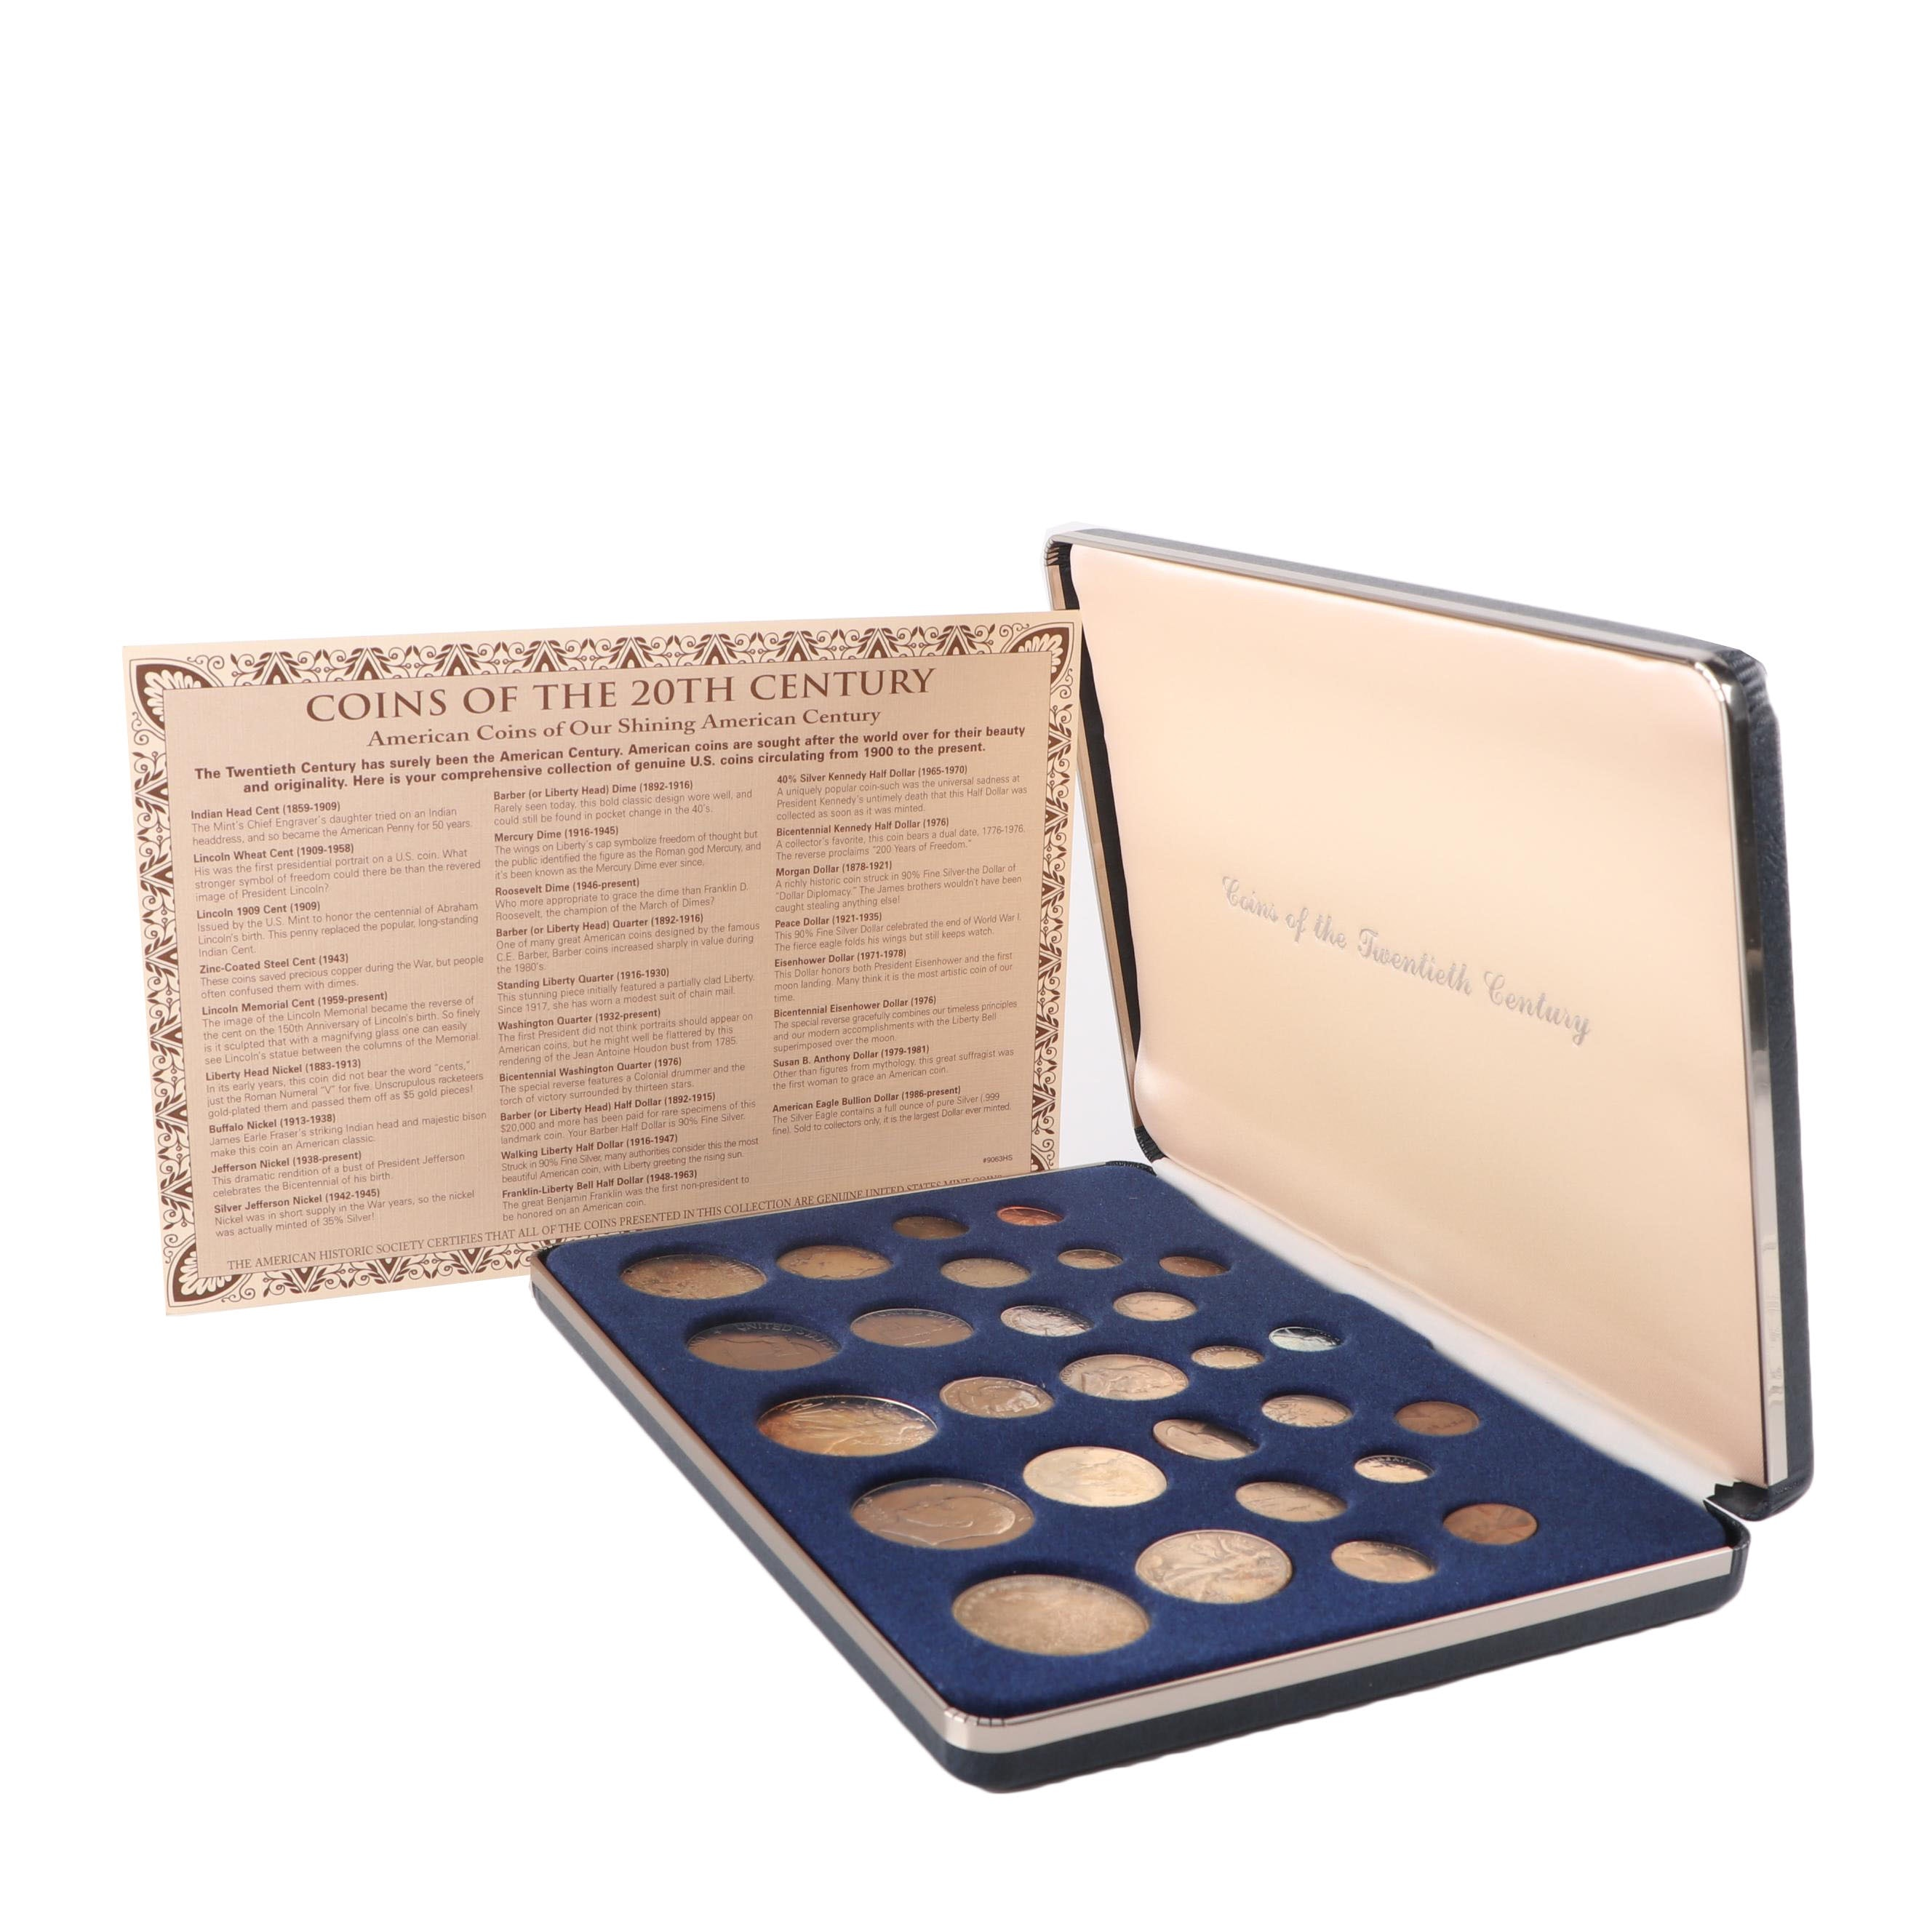 American Historic Society Coins of The Twentieth Century Collection